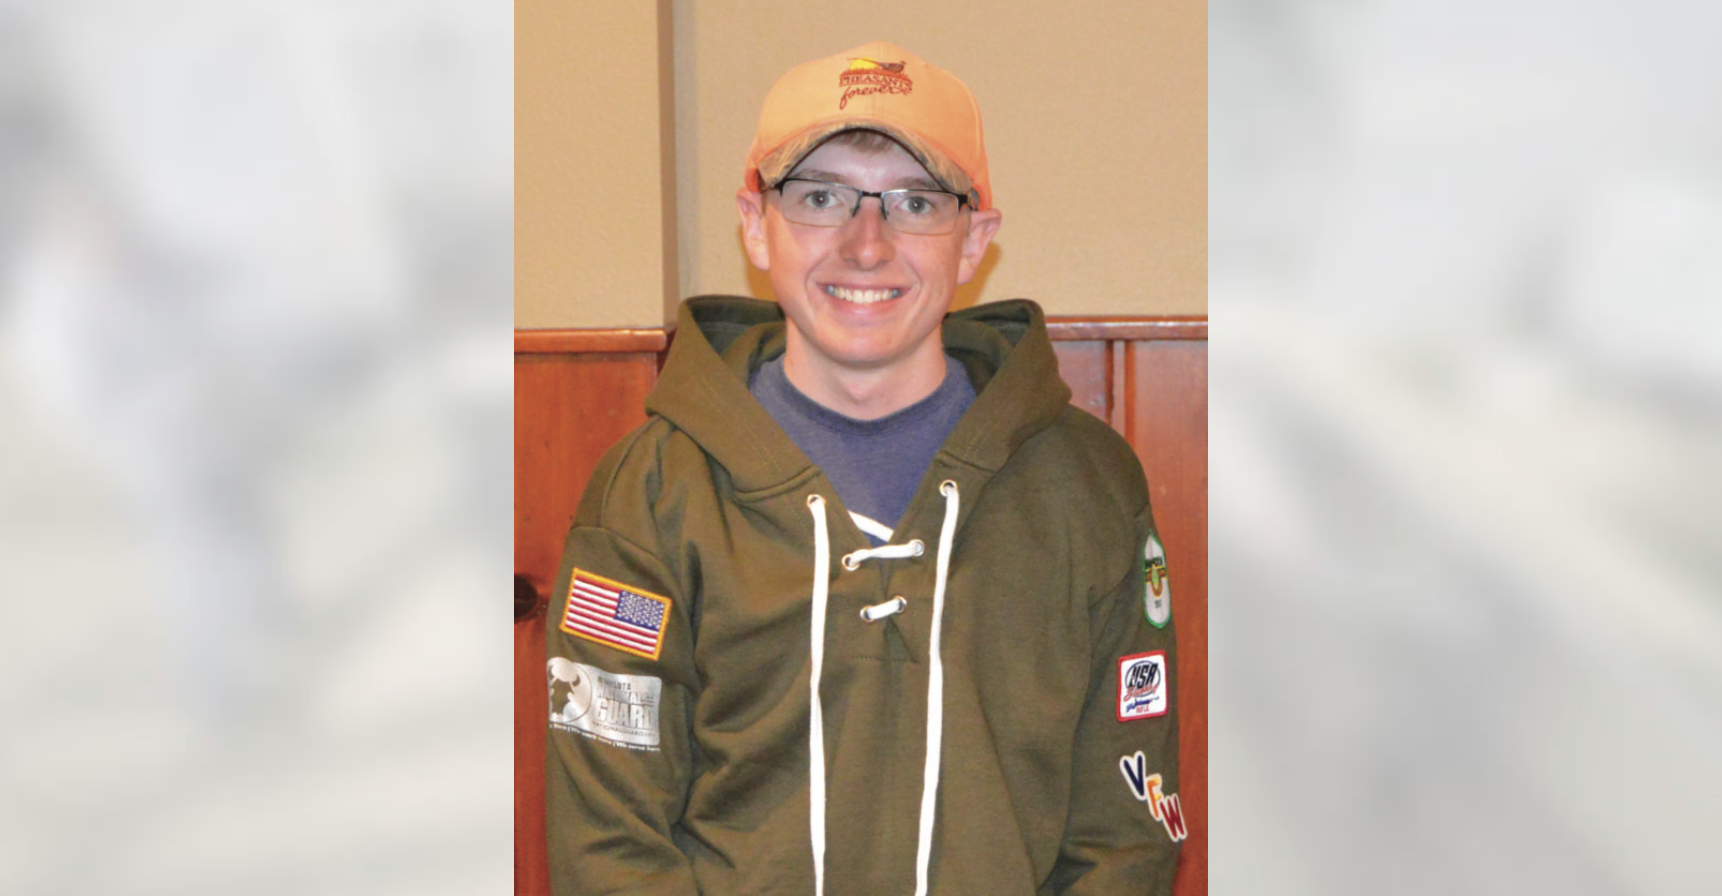 The Independent: Jared Zollner Is Making His Mark On the National Air Rifle Stage